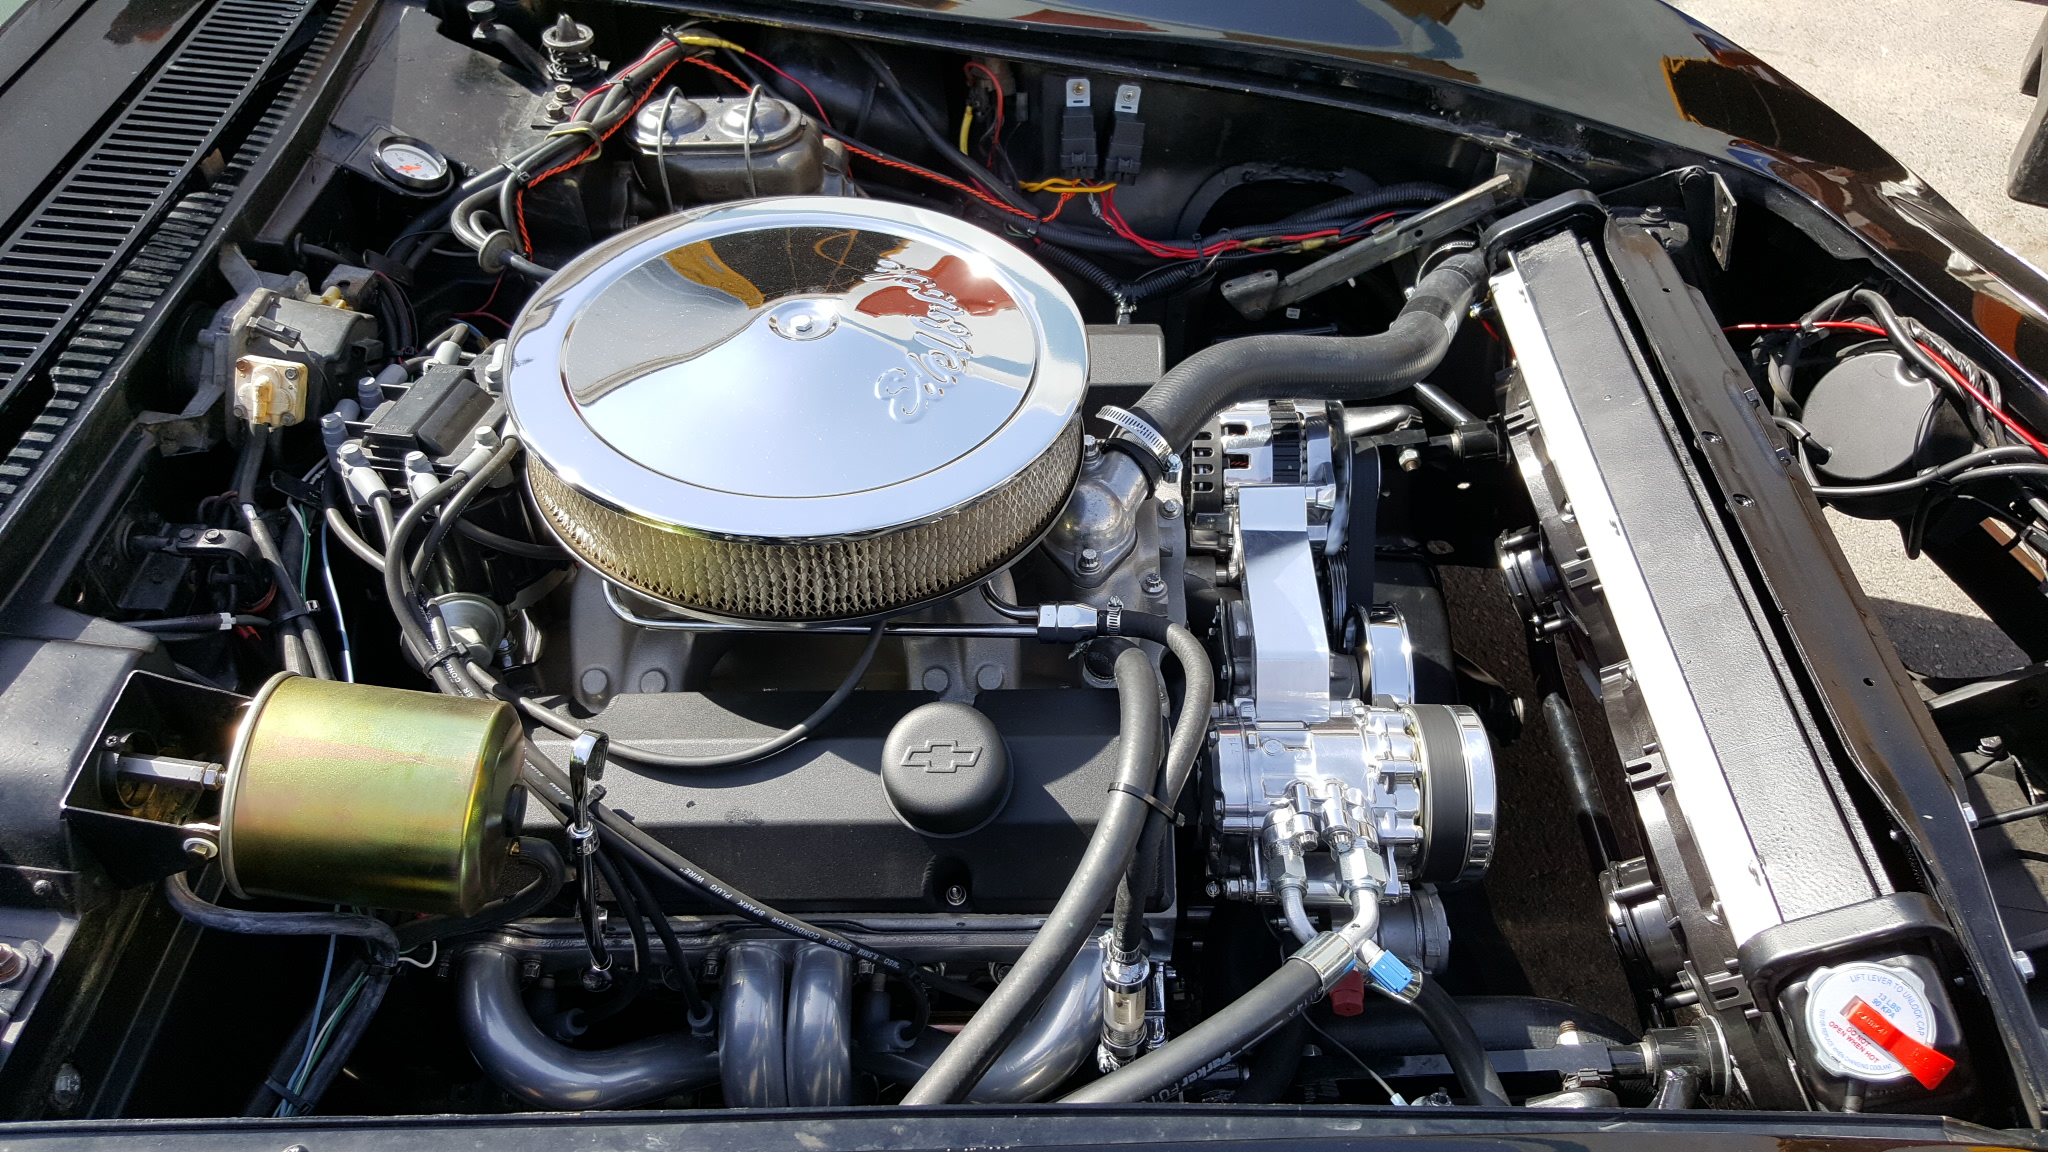 Chevy 383 Stroker Engine With Dart Pro1 Aluminum Cylinder